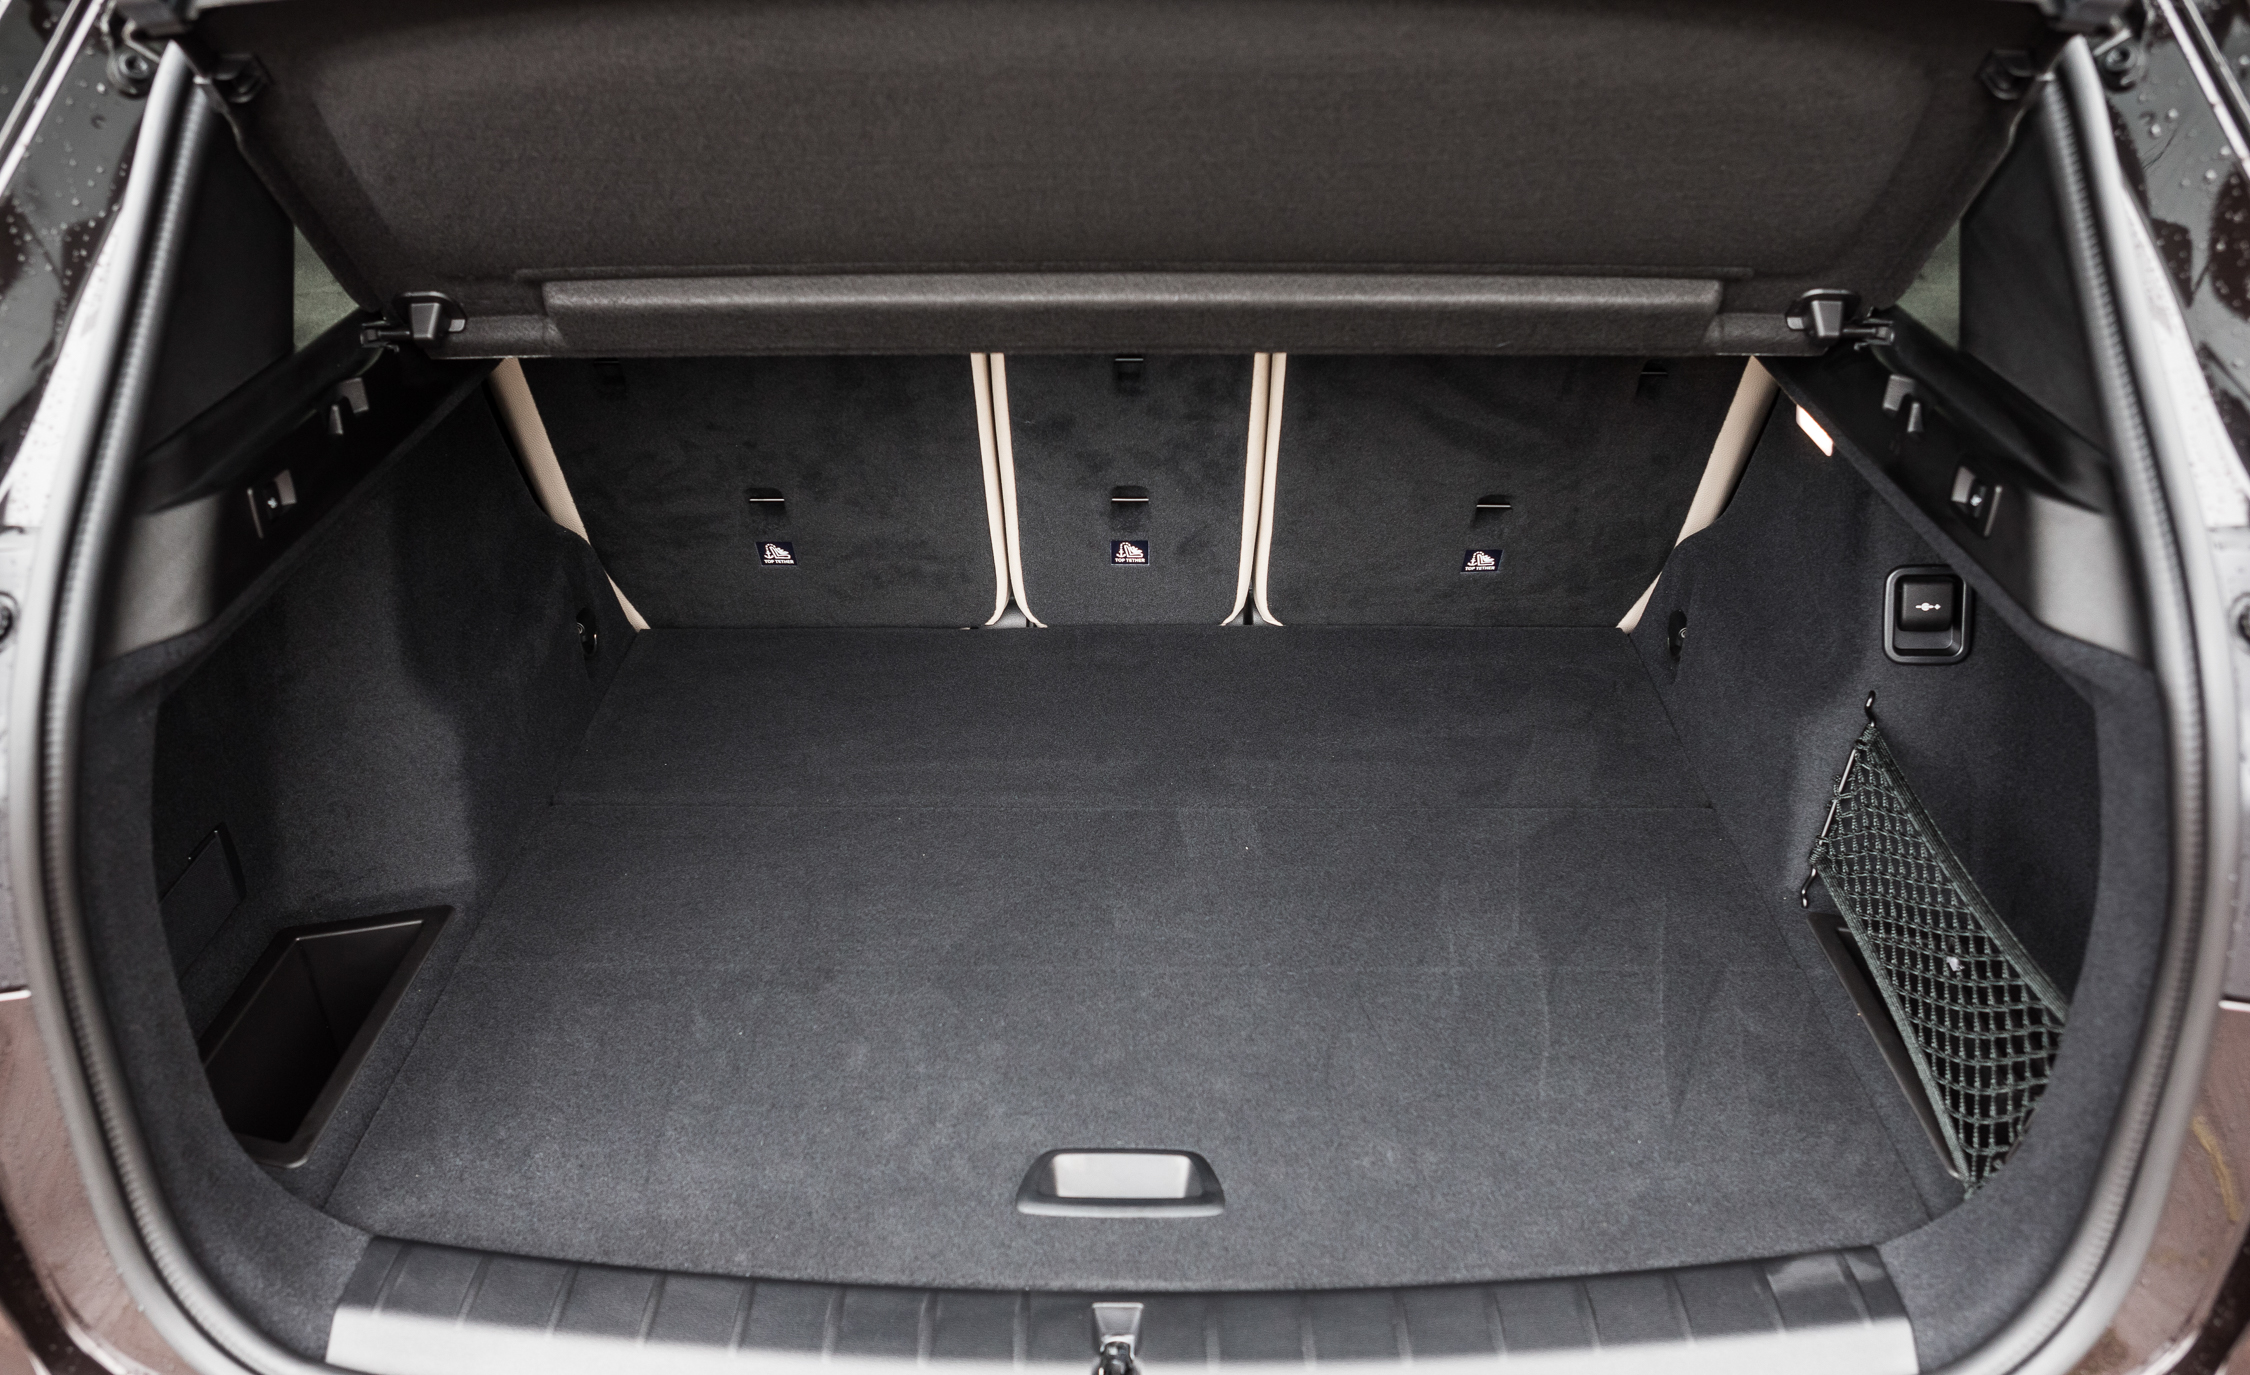 2016 BMW X1 Interior View Cargo Space (View 13 of 36)